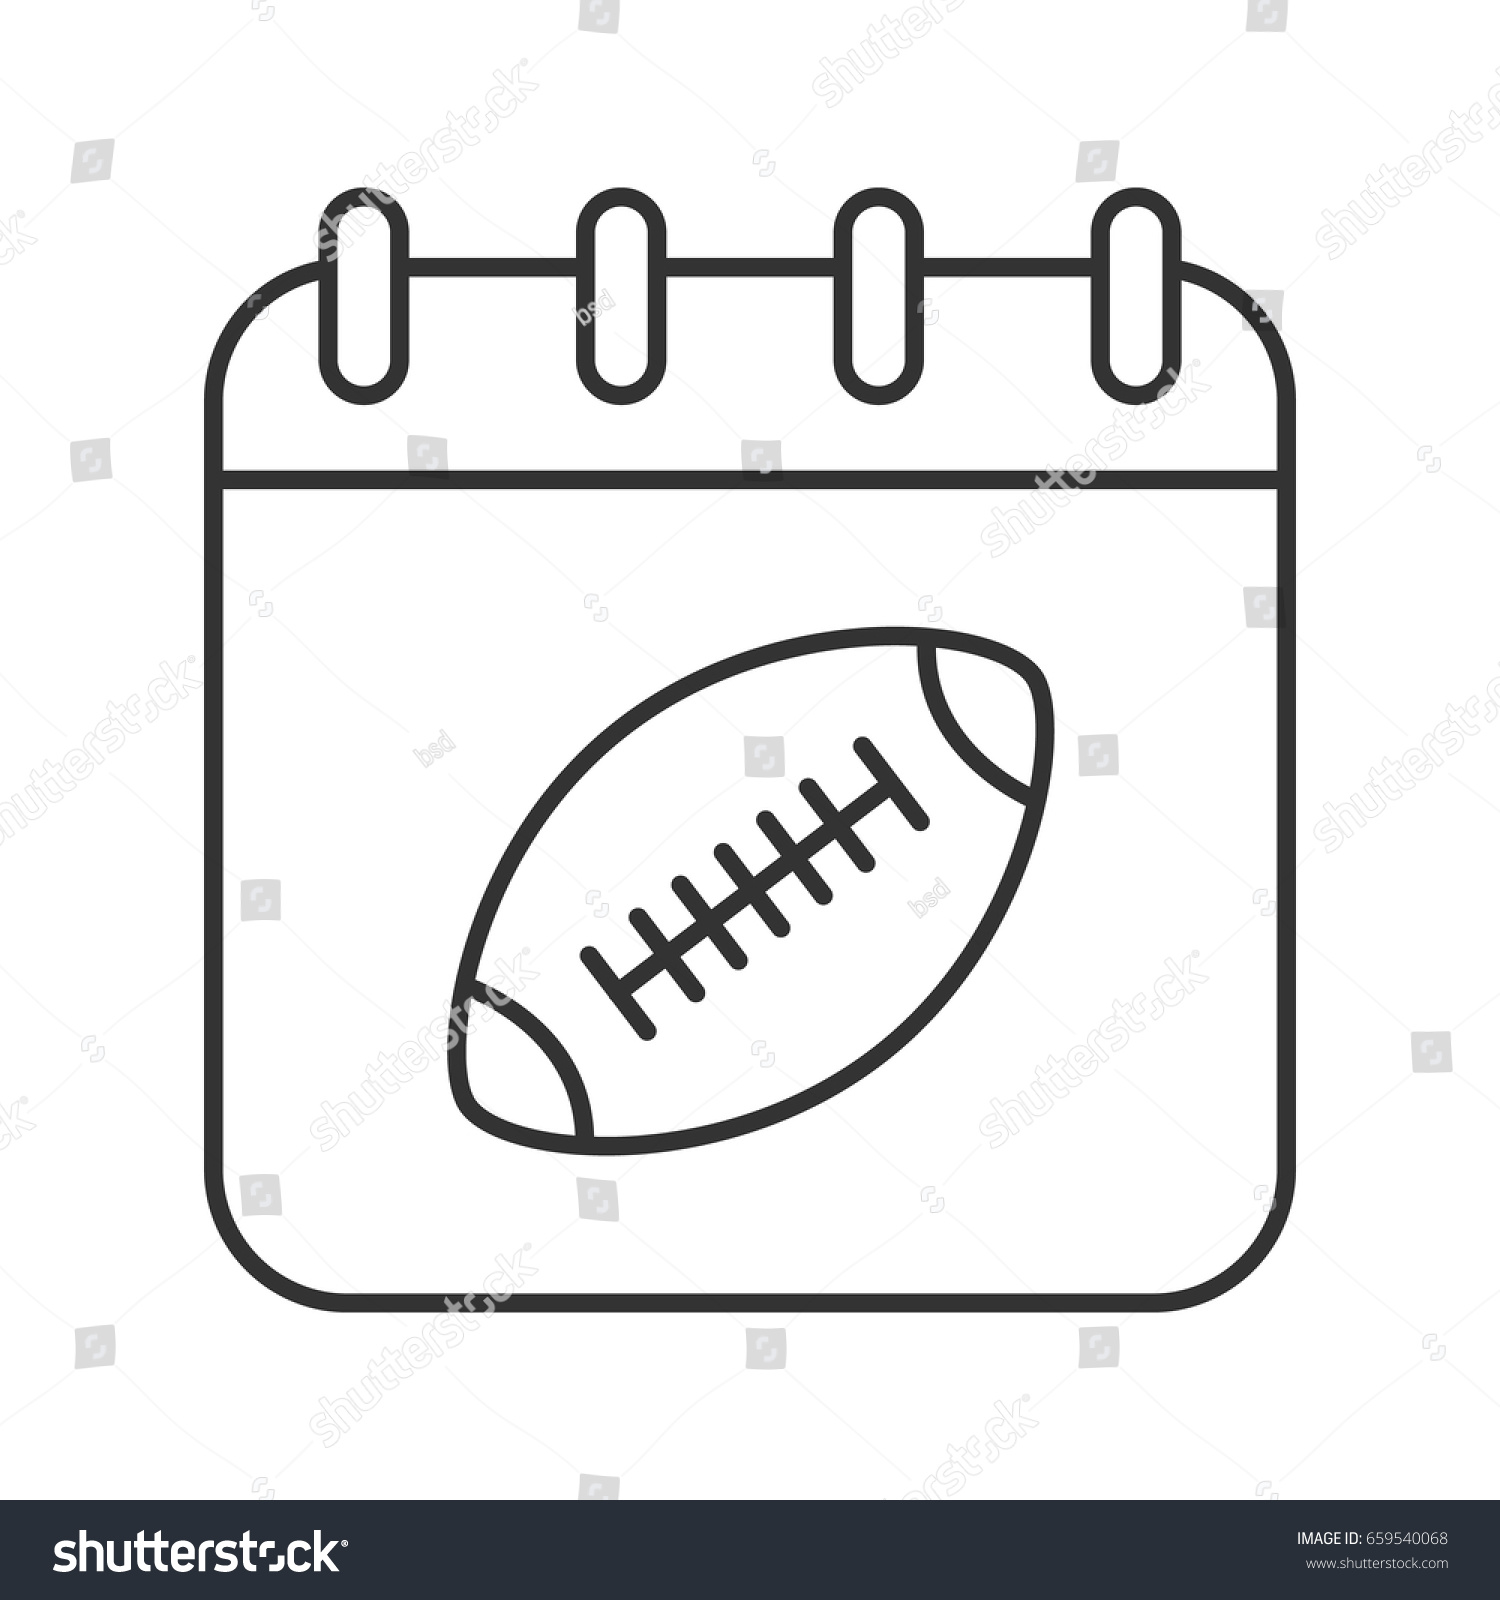 Super bowl date linear icon thin stock vector 659540068 shutterstock super bowl date linear icon thin line illustration calendar page with american football ball biocorpaavc